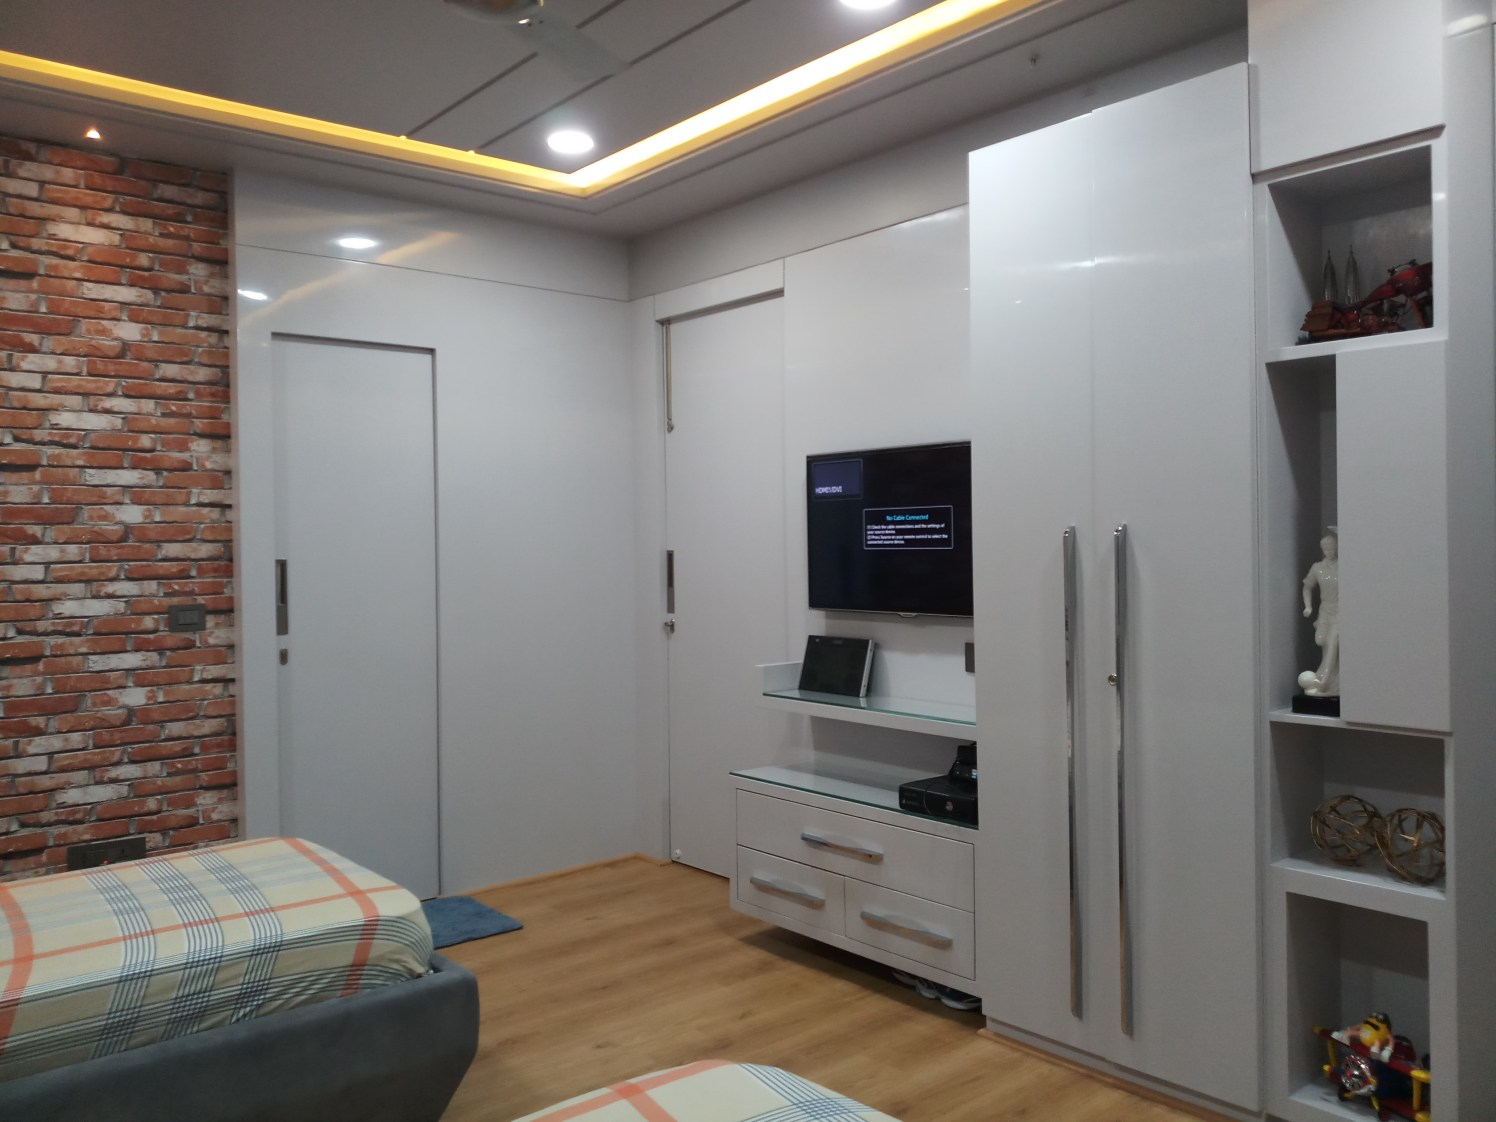 White Glossy Wardrobe with Display Unit and False Ceiling with yellow Neon Lighting by Sumita Mehra Bedroom Contemporary   Interior Design Photos & Ideas